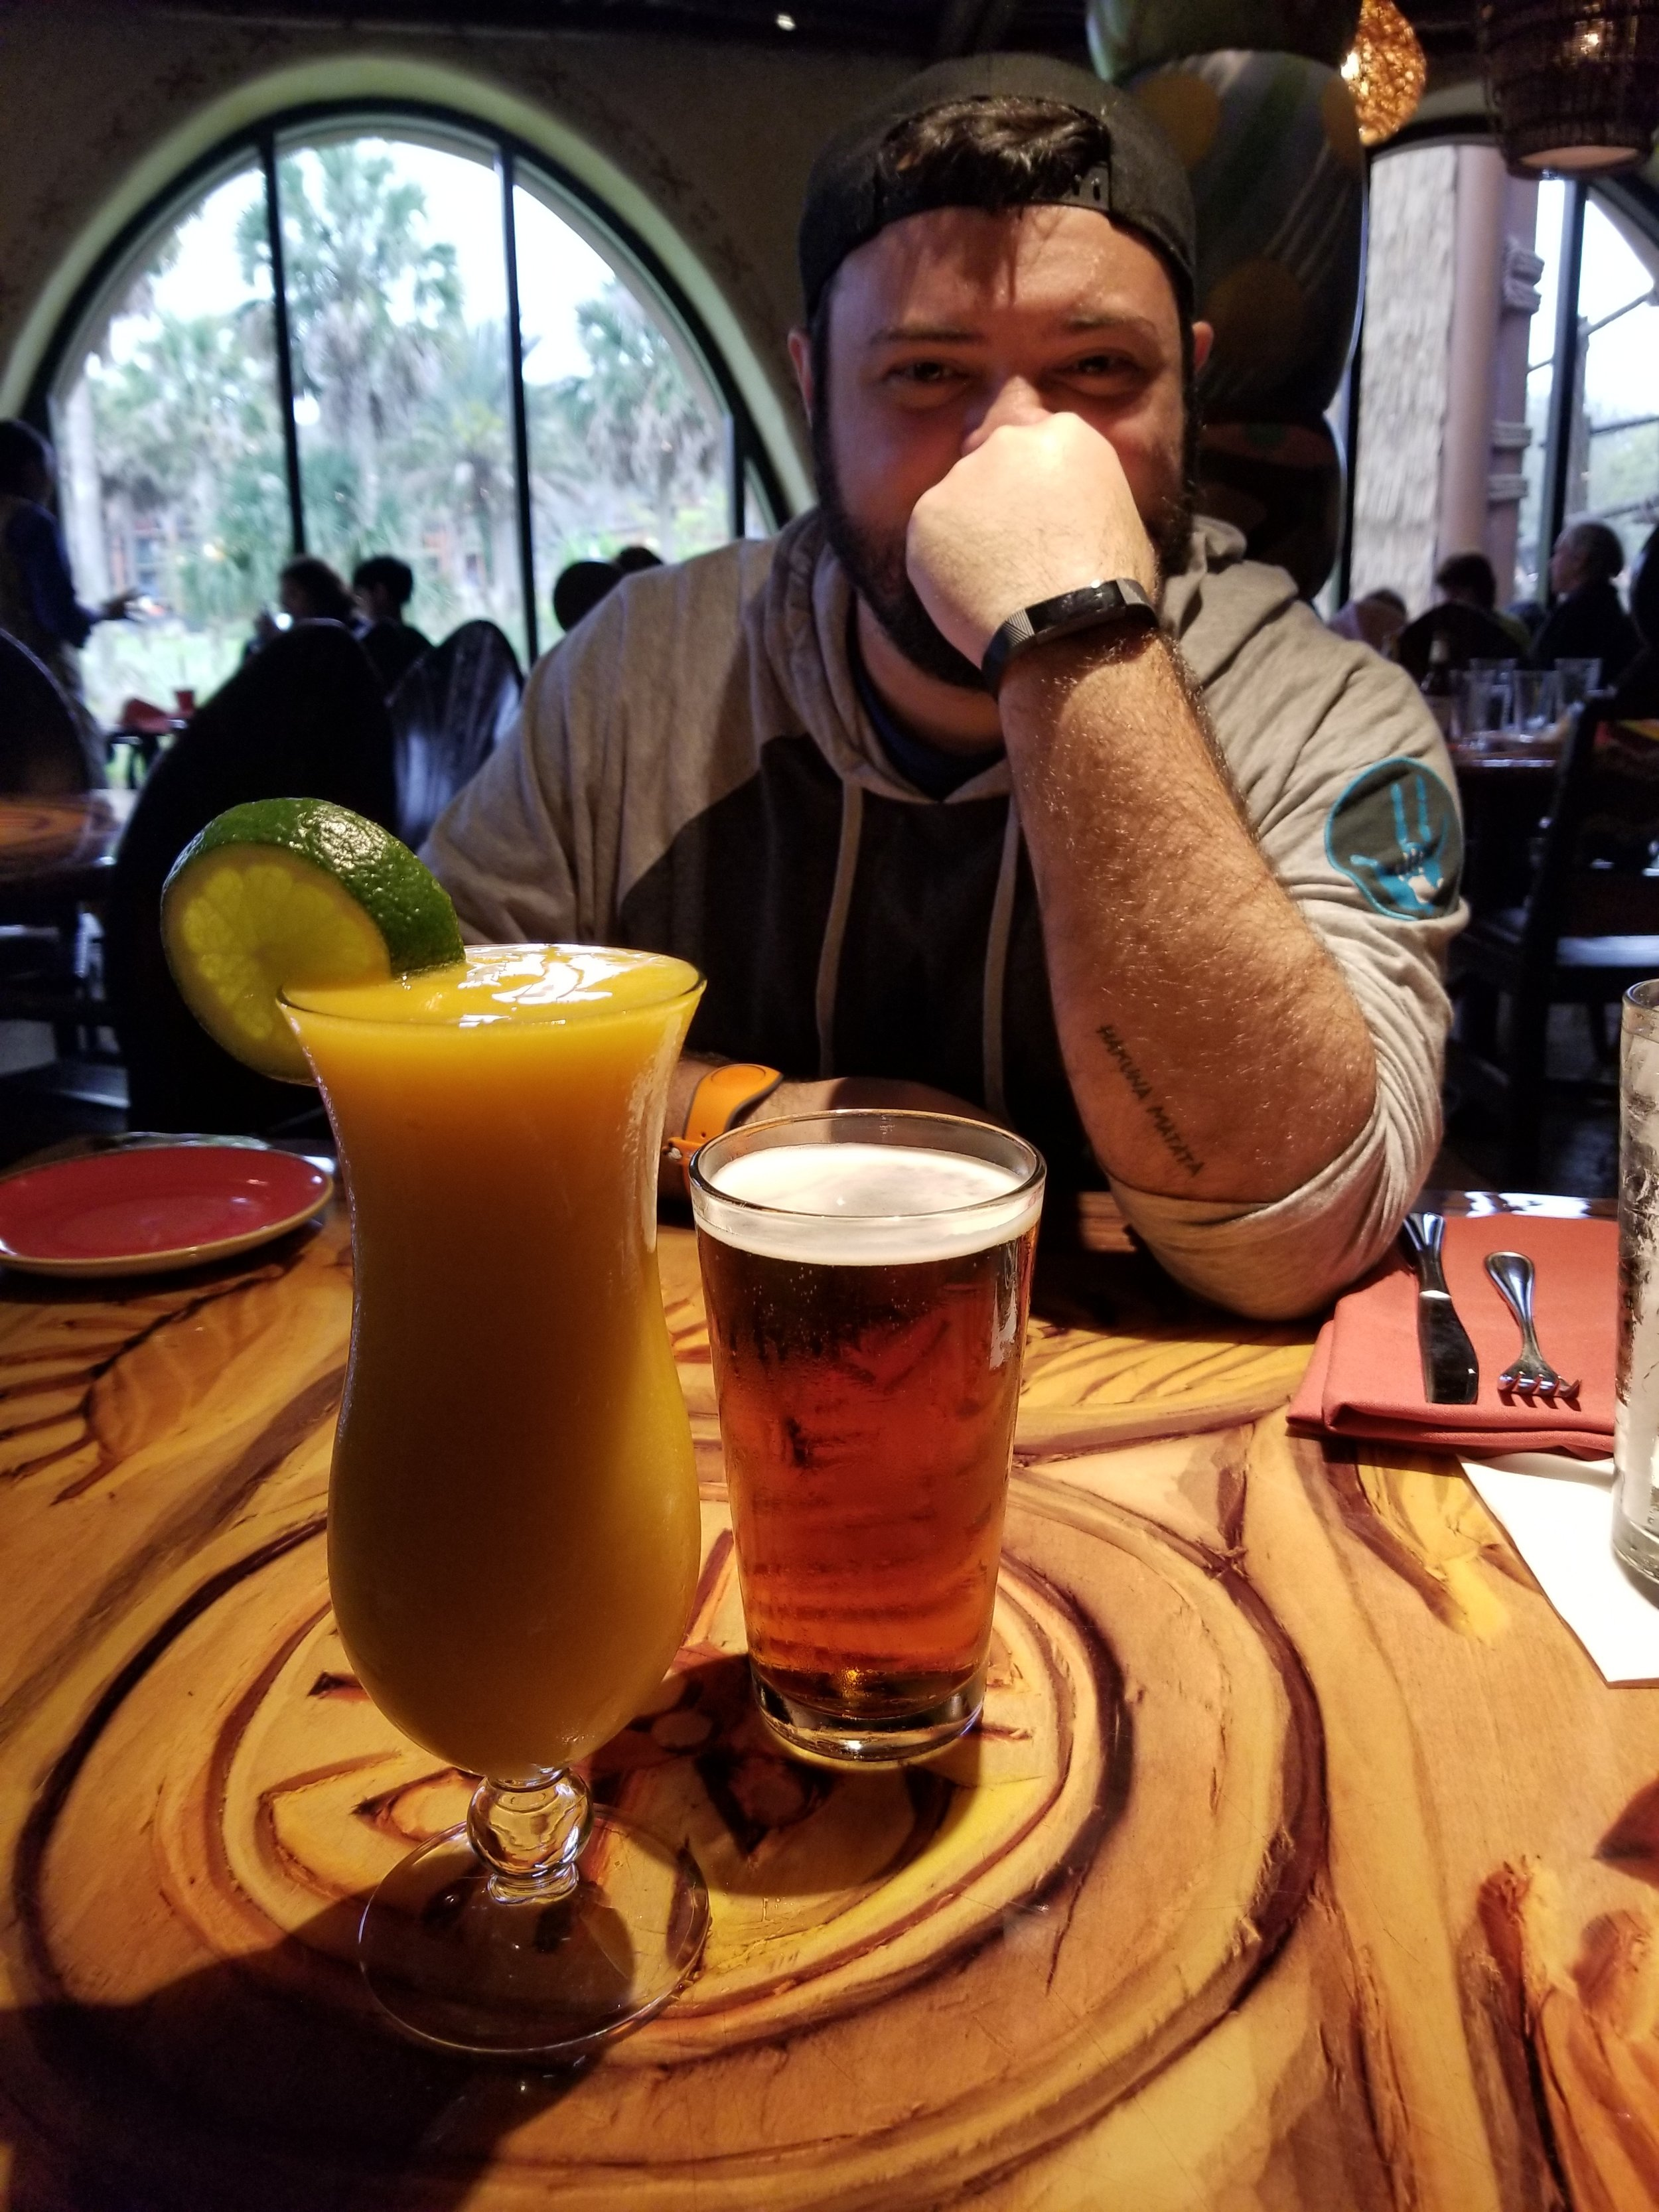 Tori got a Margarita & Matt ordered beer. Fortunately Tori held off from diving into the drink before taking a photo!